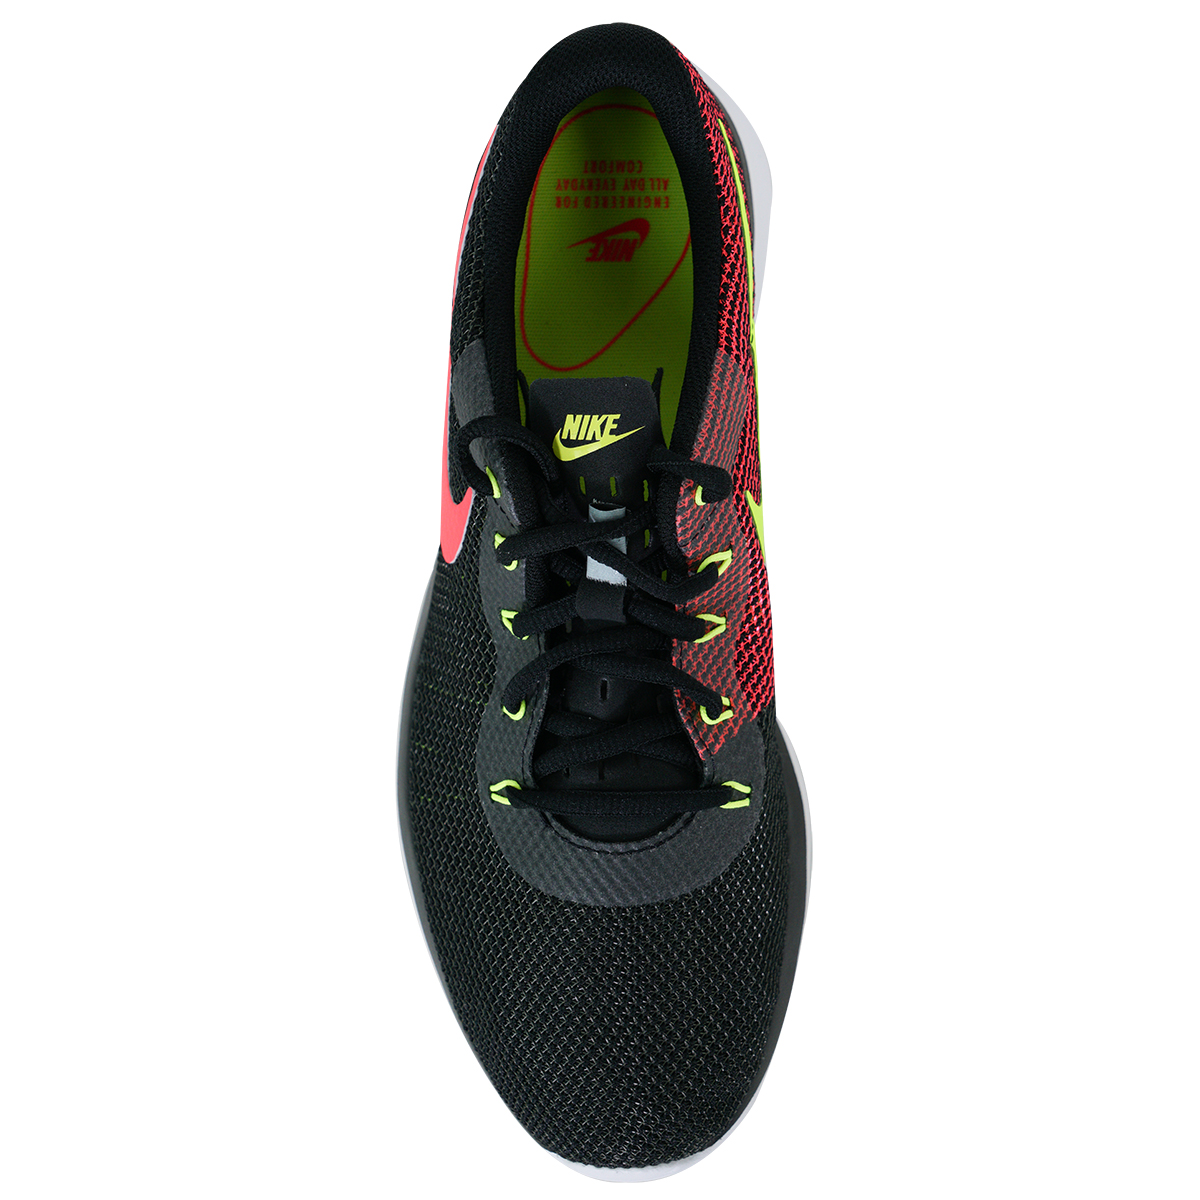 Nike-Men-039-s-Tanjun-Racer-Running-Shoes thumbnail 4